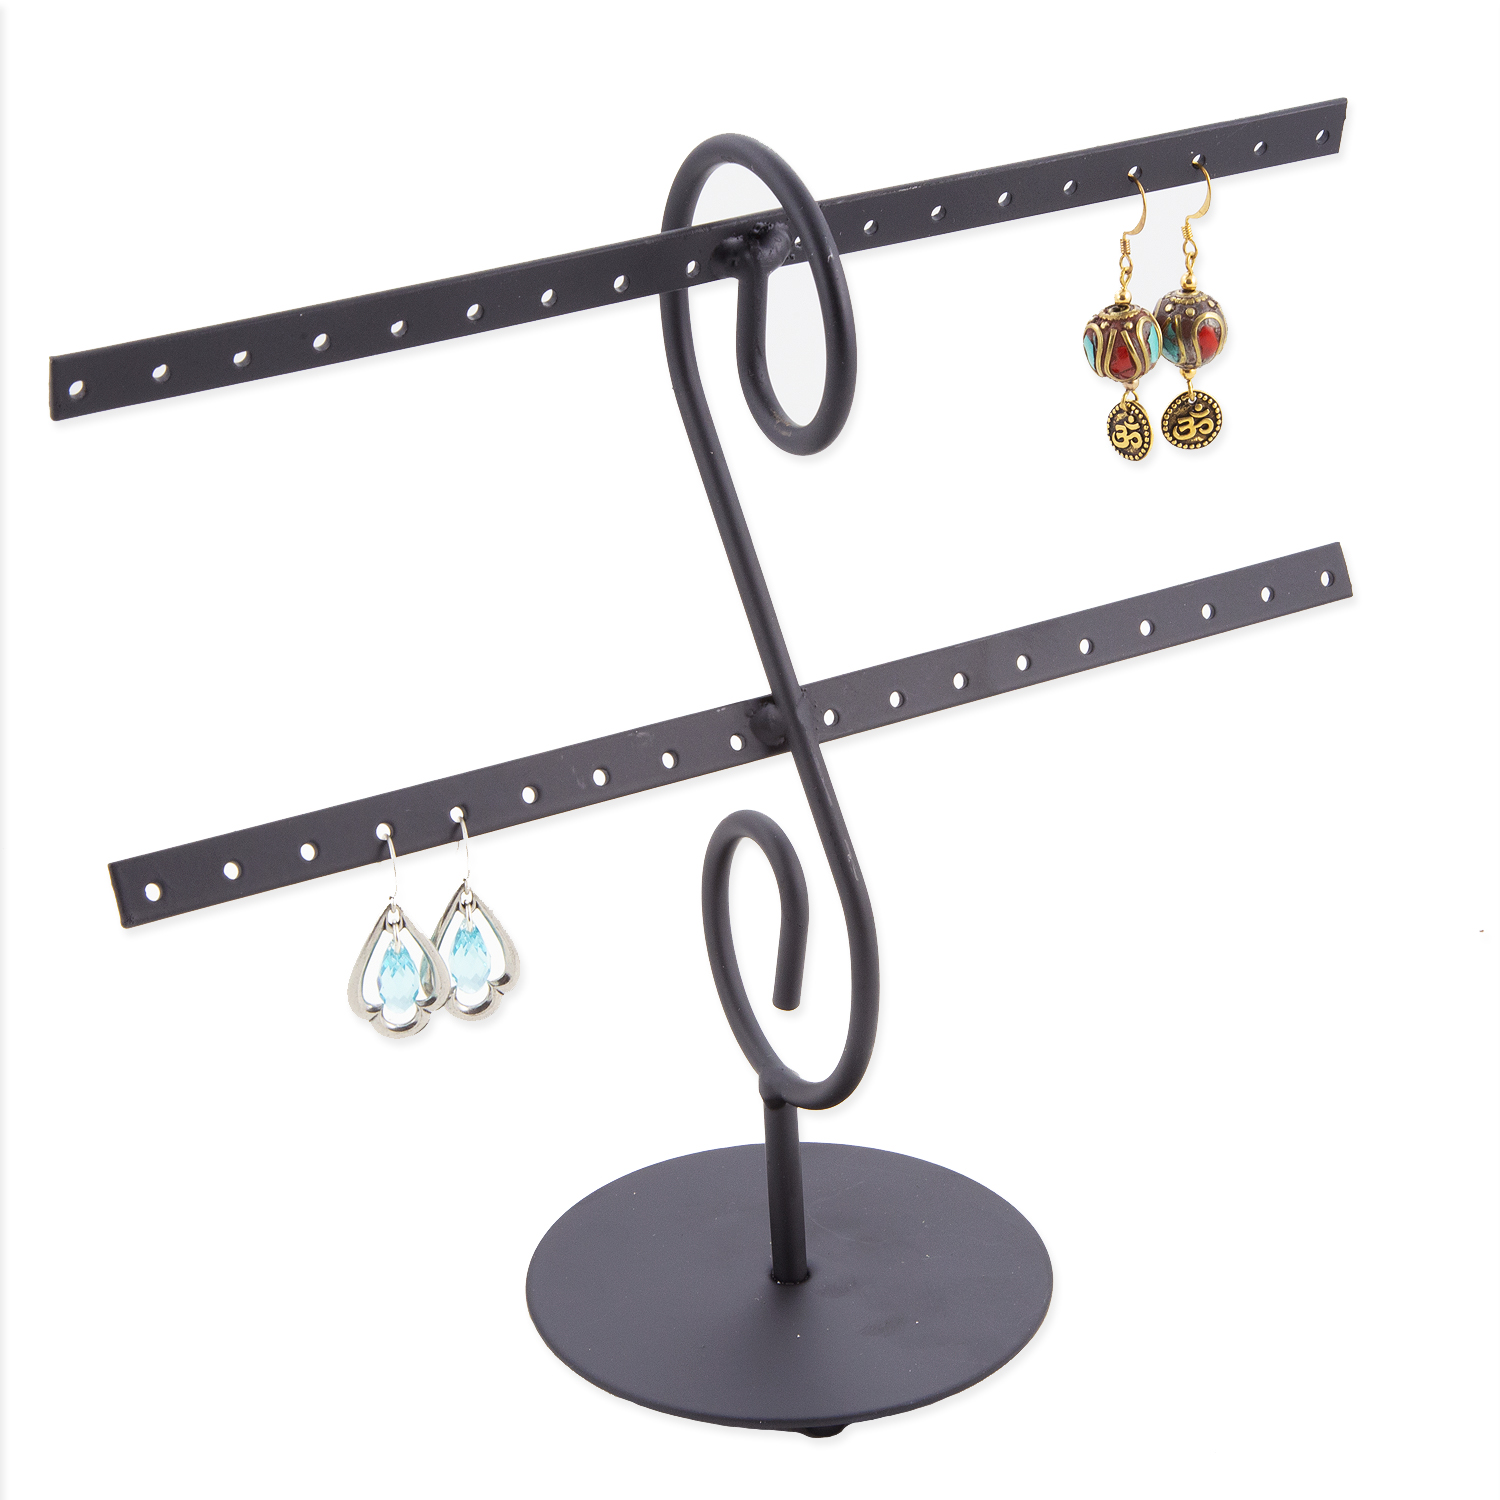 Wholesale Jewelry Packaging Metal Earring Rack Jewelry Display Holds16 Pairs